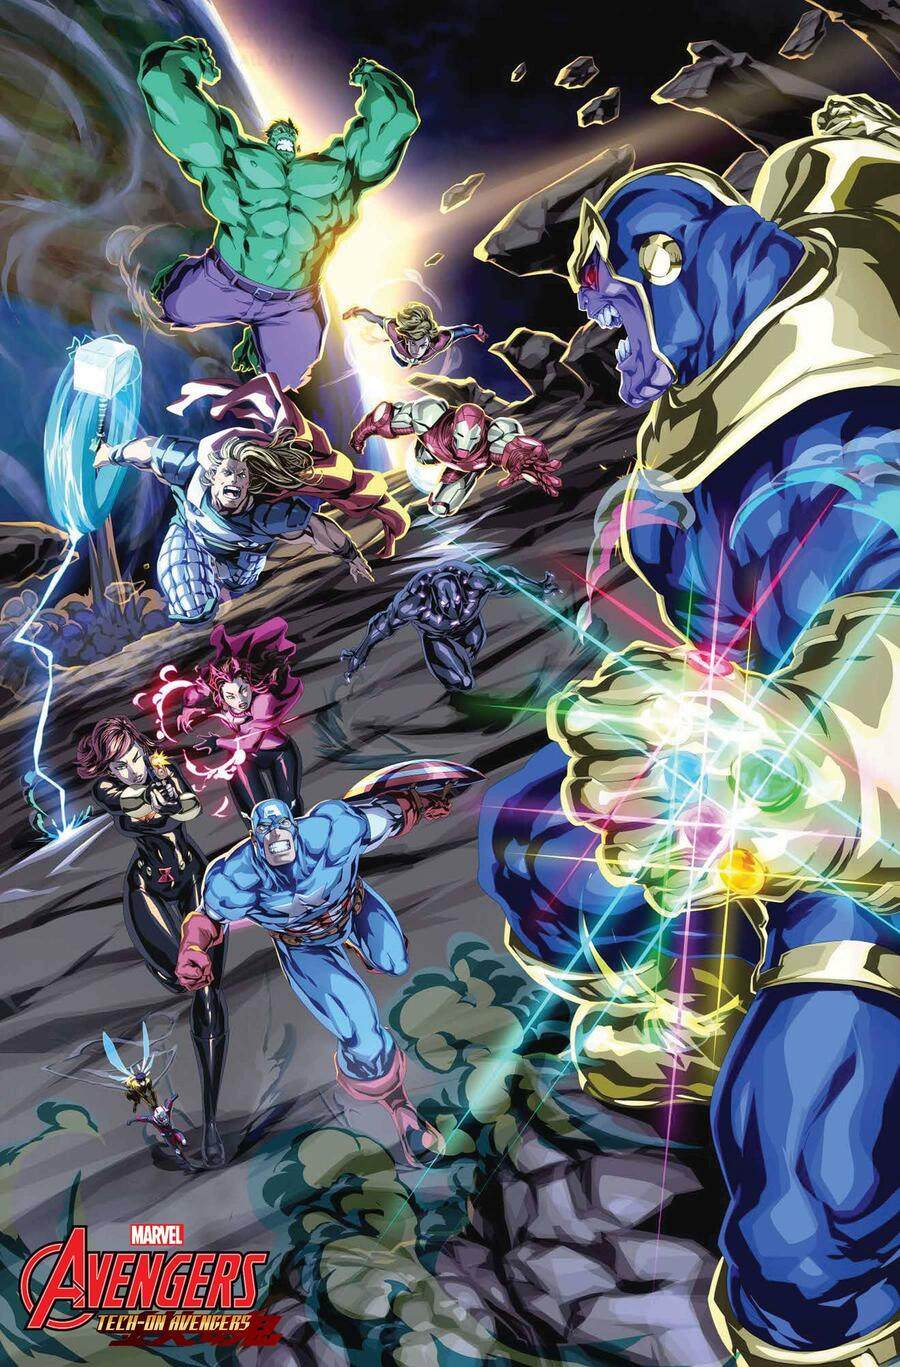 TECH-ON AVENGERS #1 preview art by Chamba